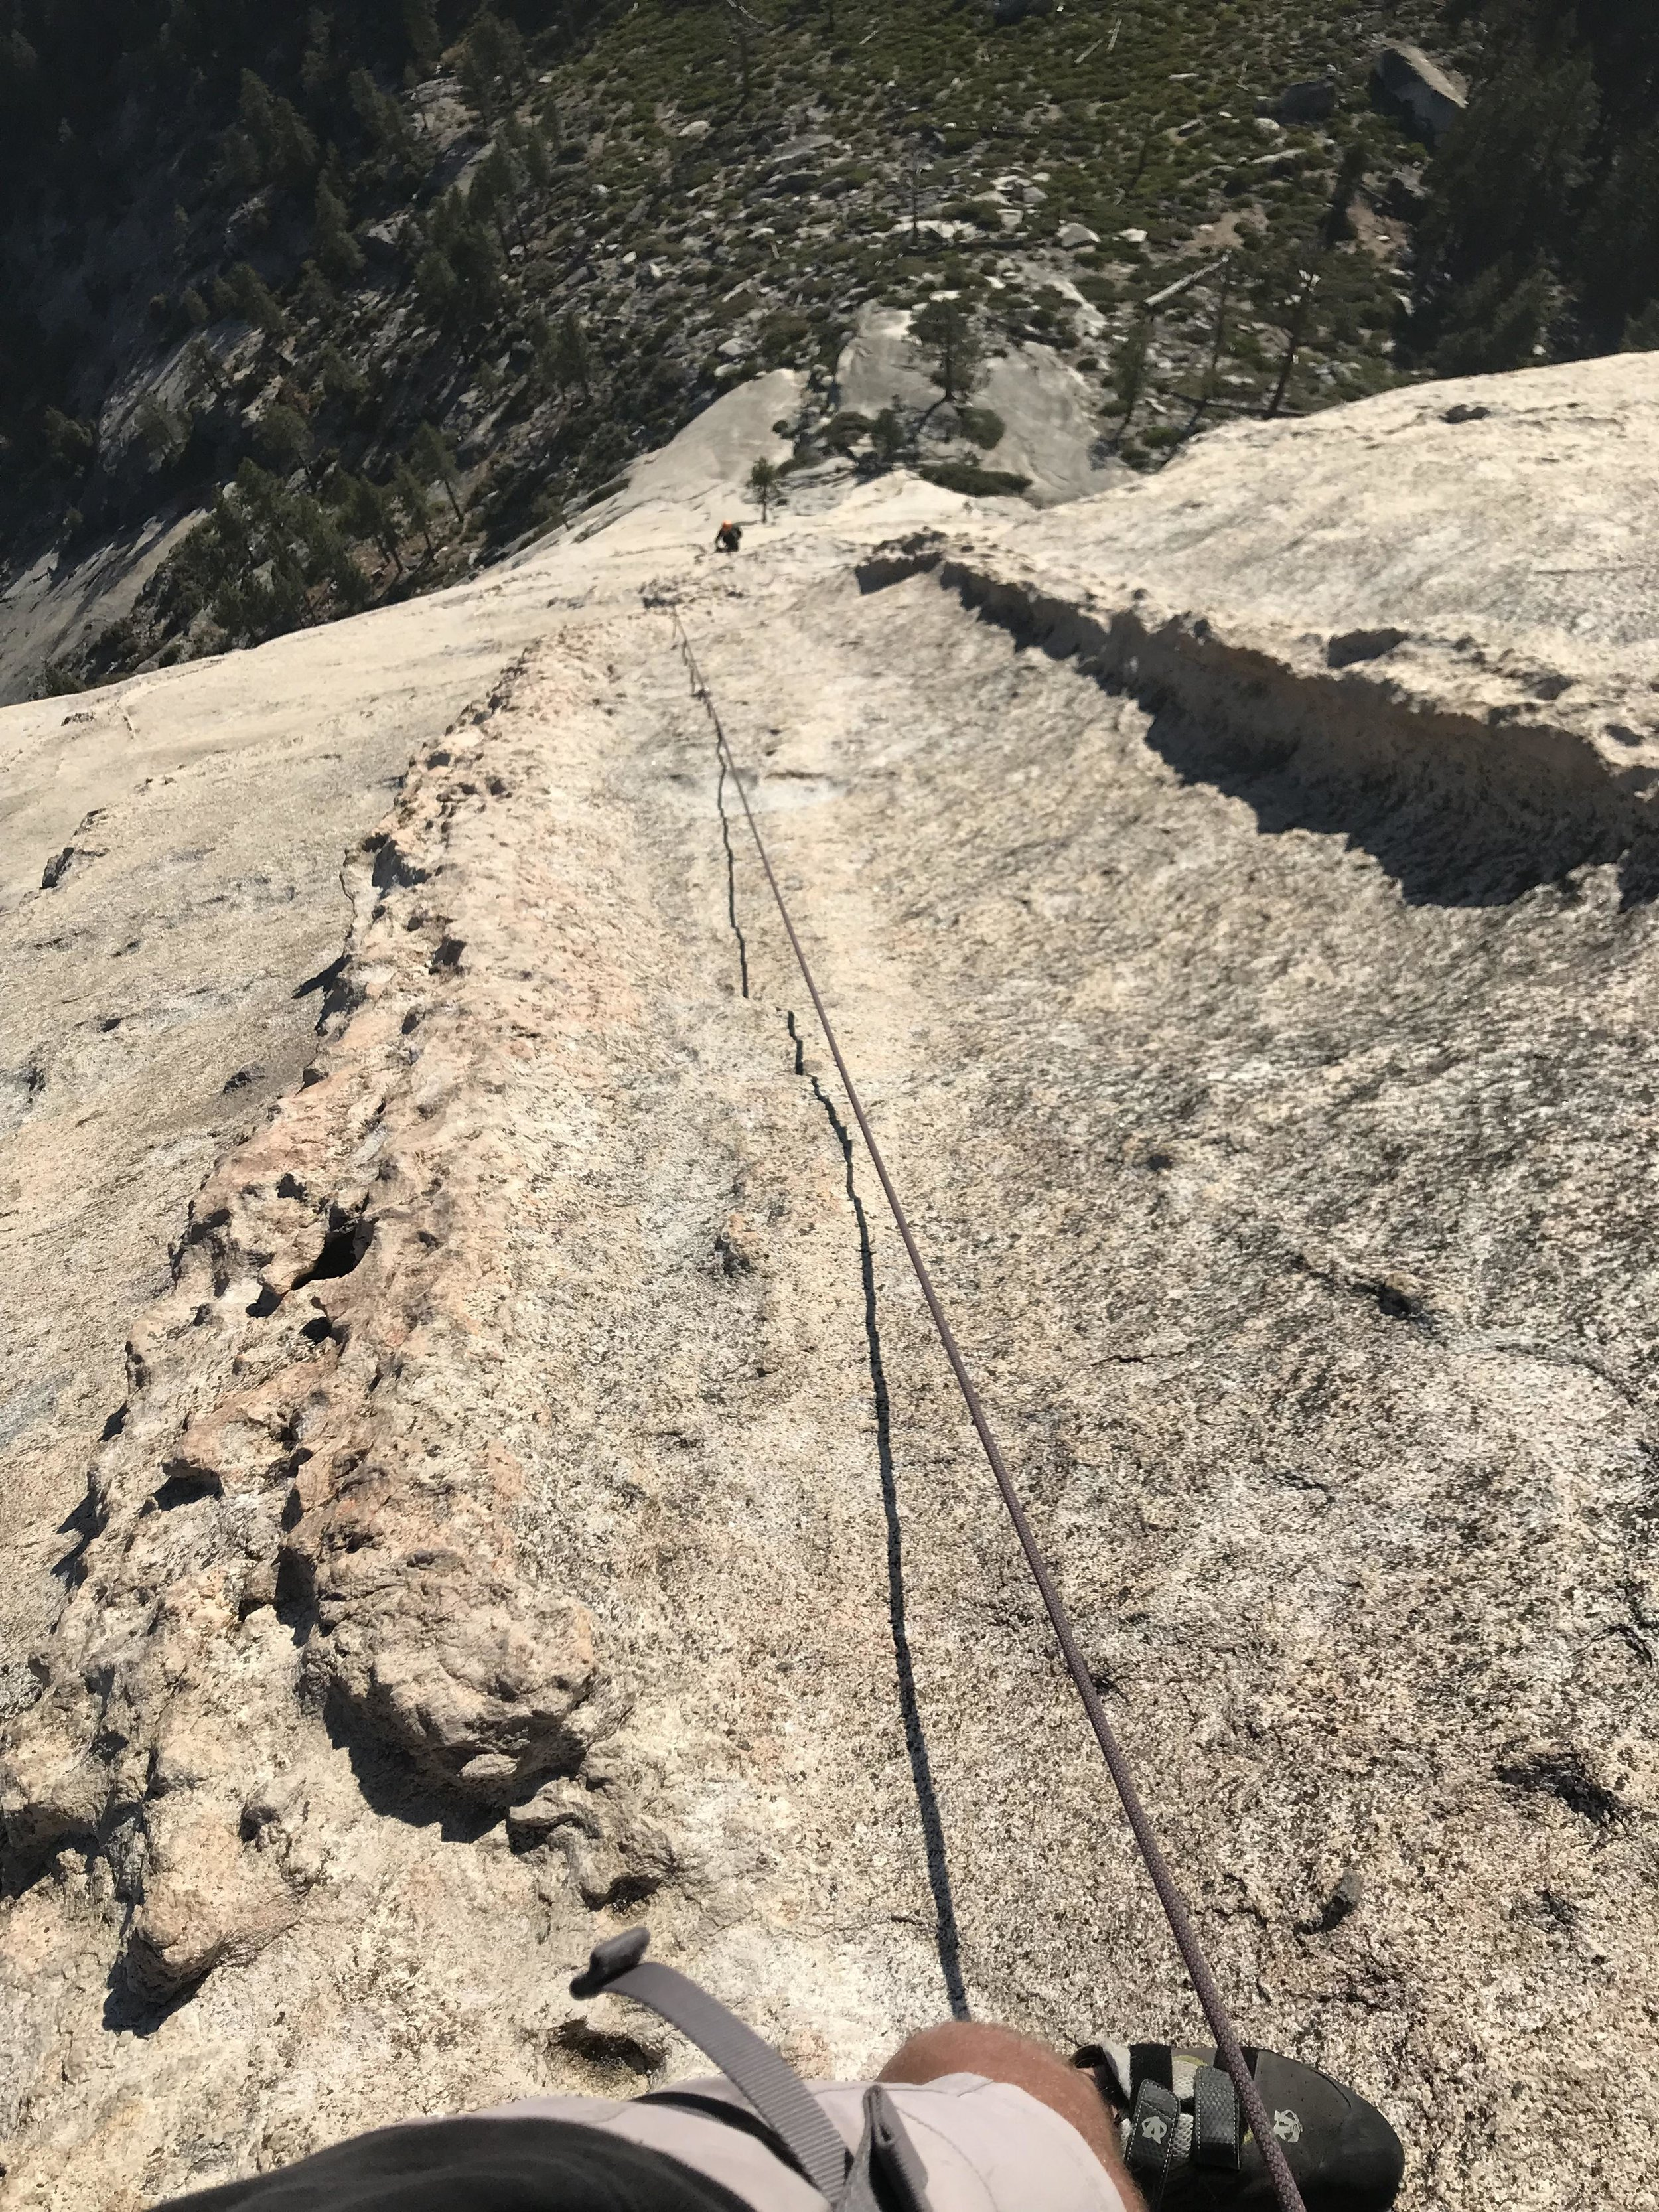 Only one bolt on this pitch...luckily the climbing was only 5.4 ish.